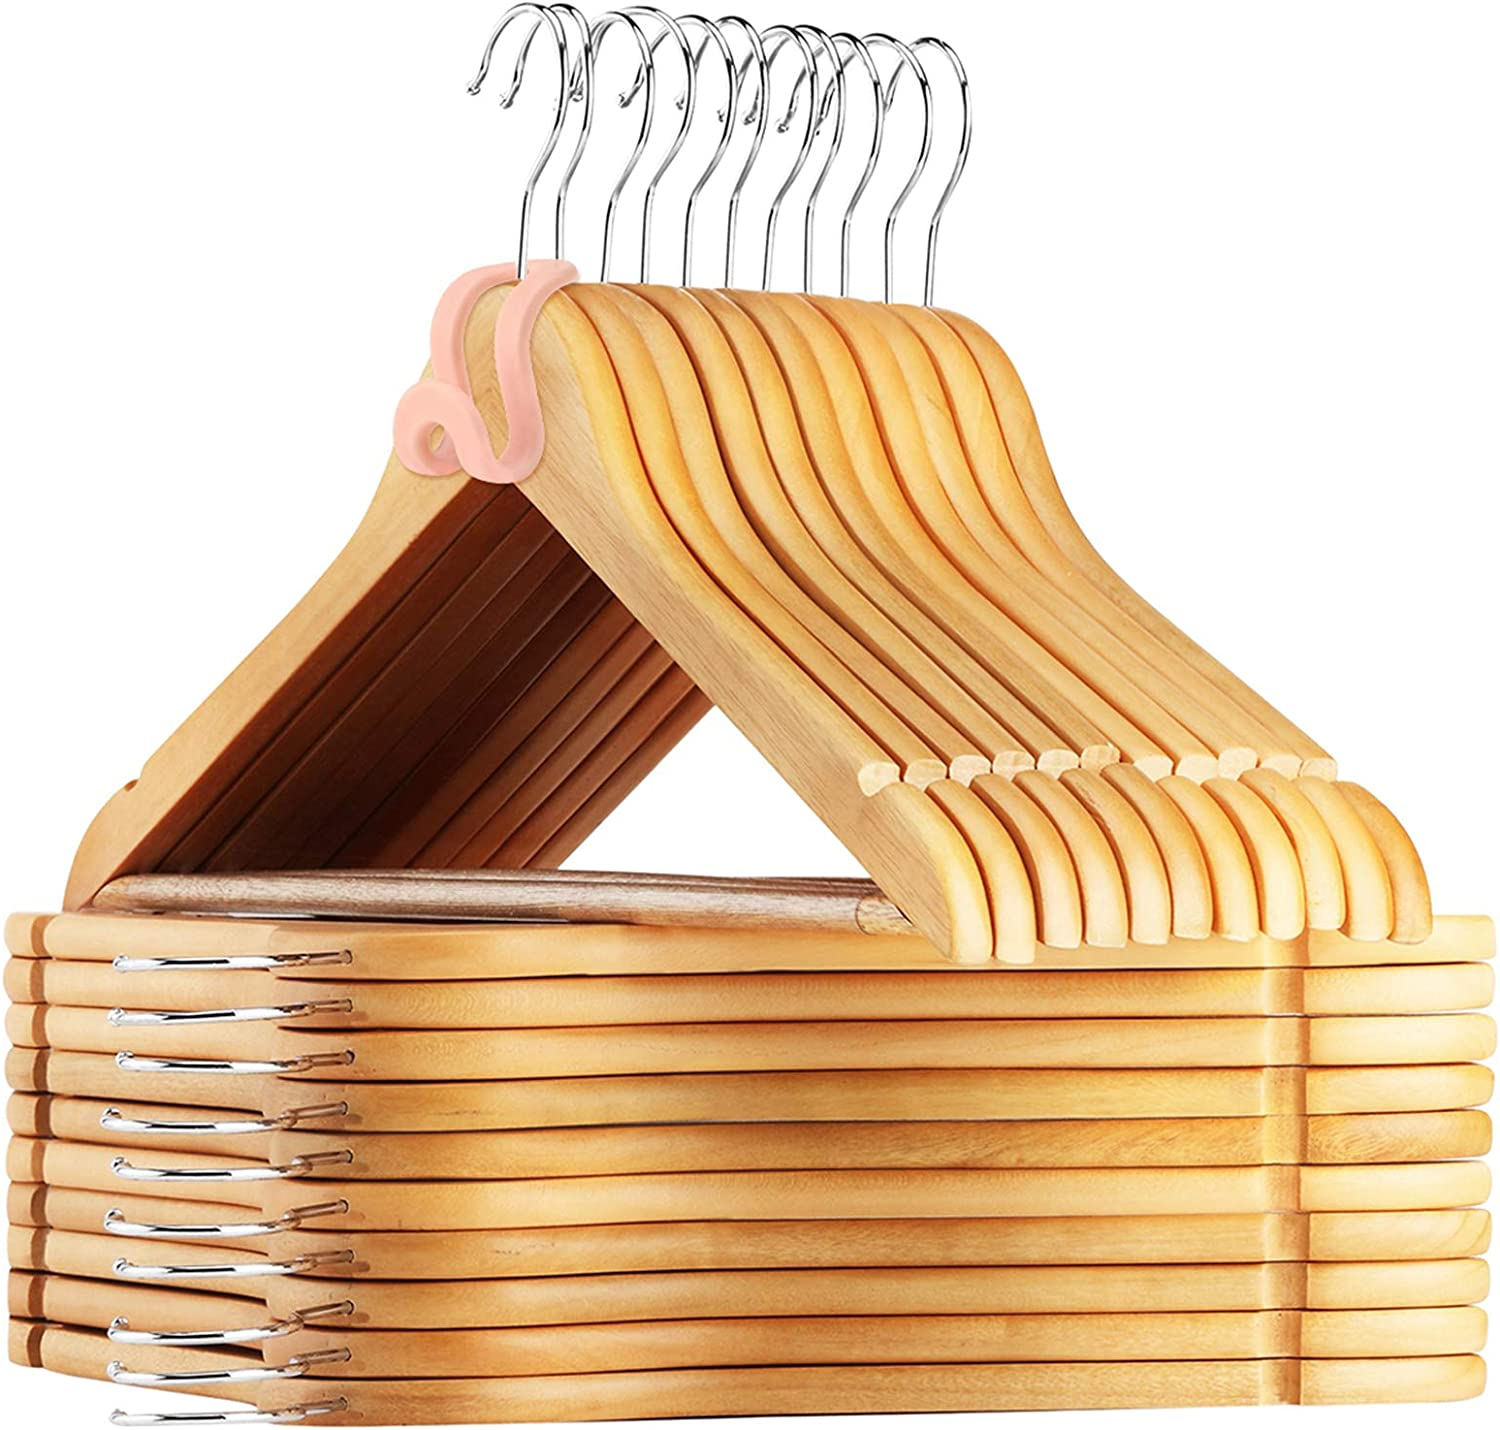 AMKUFO 24 Pack Wooden Clothes Hangers Wooden Suit Hangers with Non Slip Groove, 17.5 Inch Solid Wood with 360° Swivel Hook, Natural Coat Hangers with 24 Free Connector Hooks for Space Saving